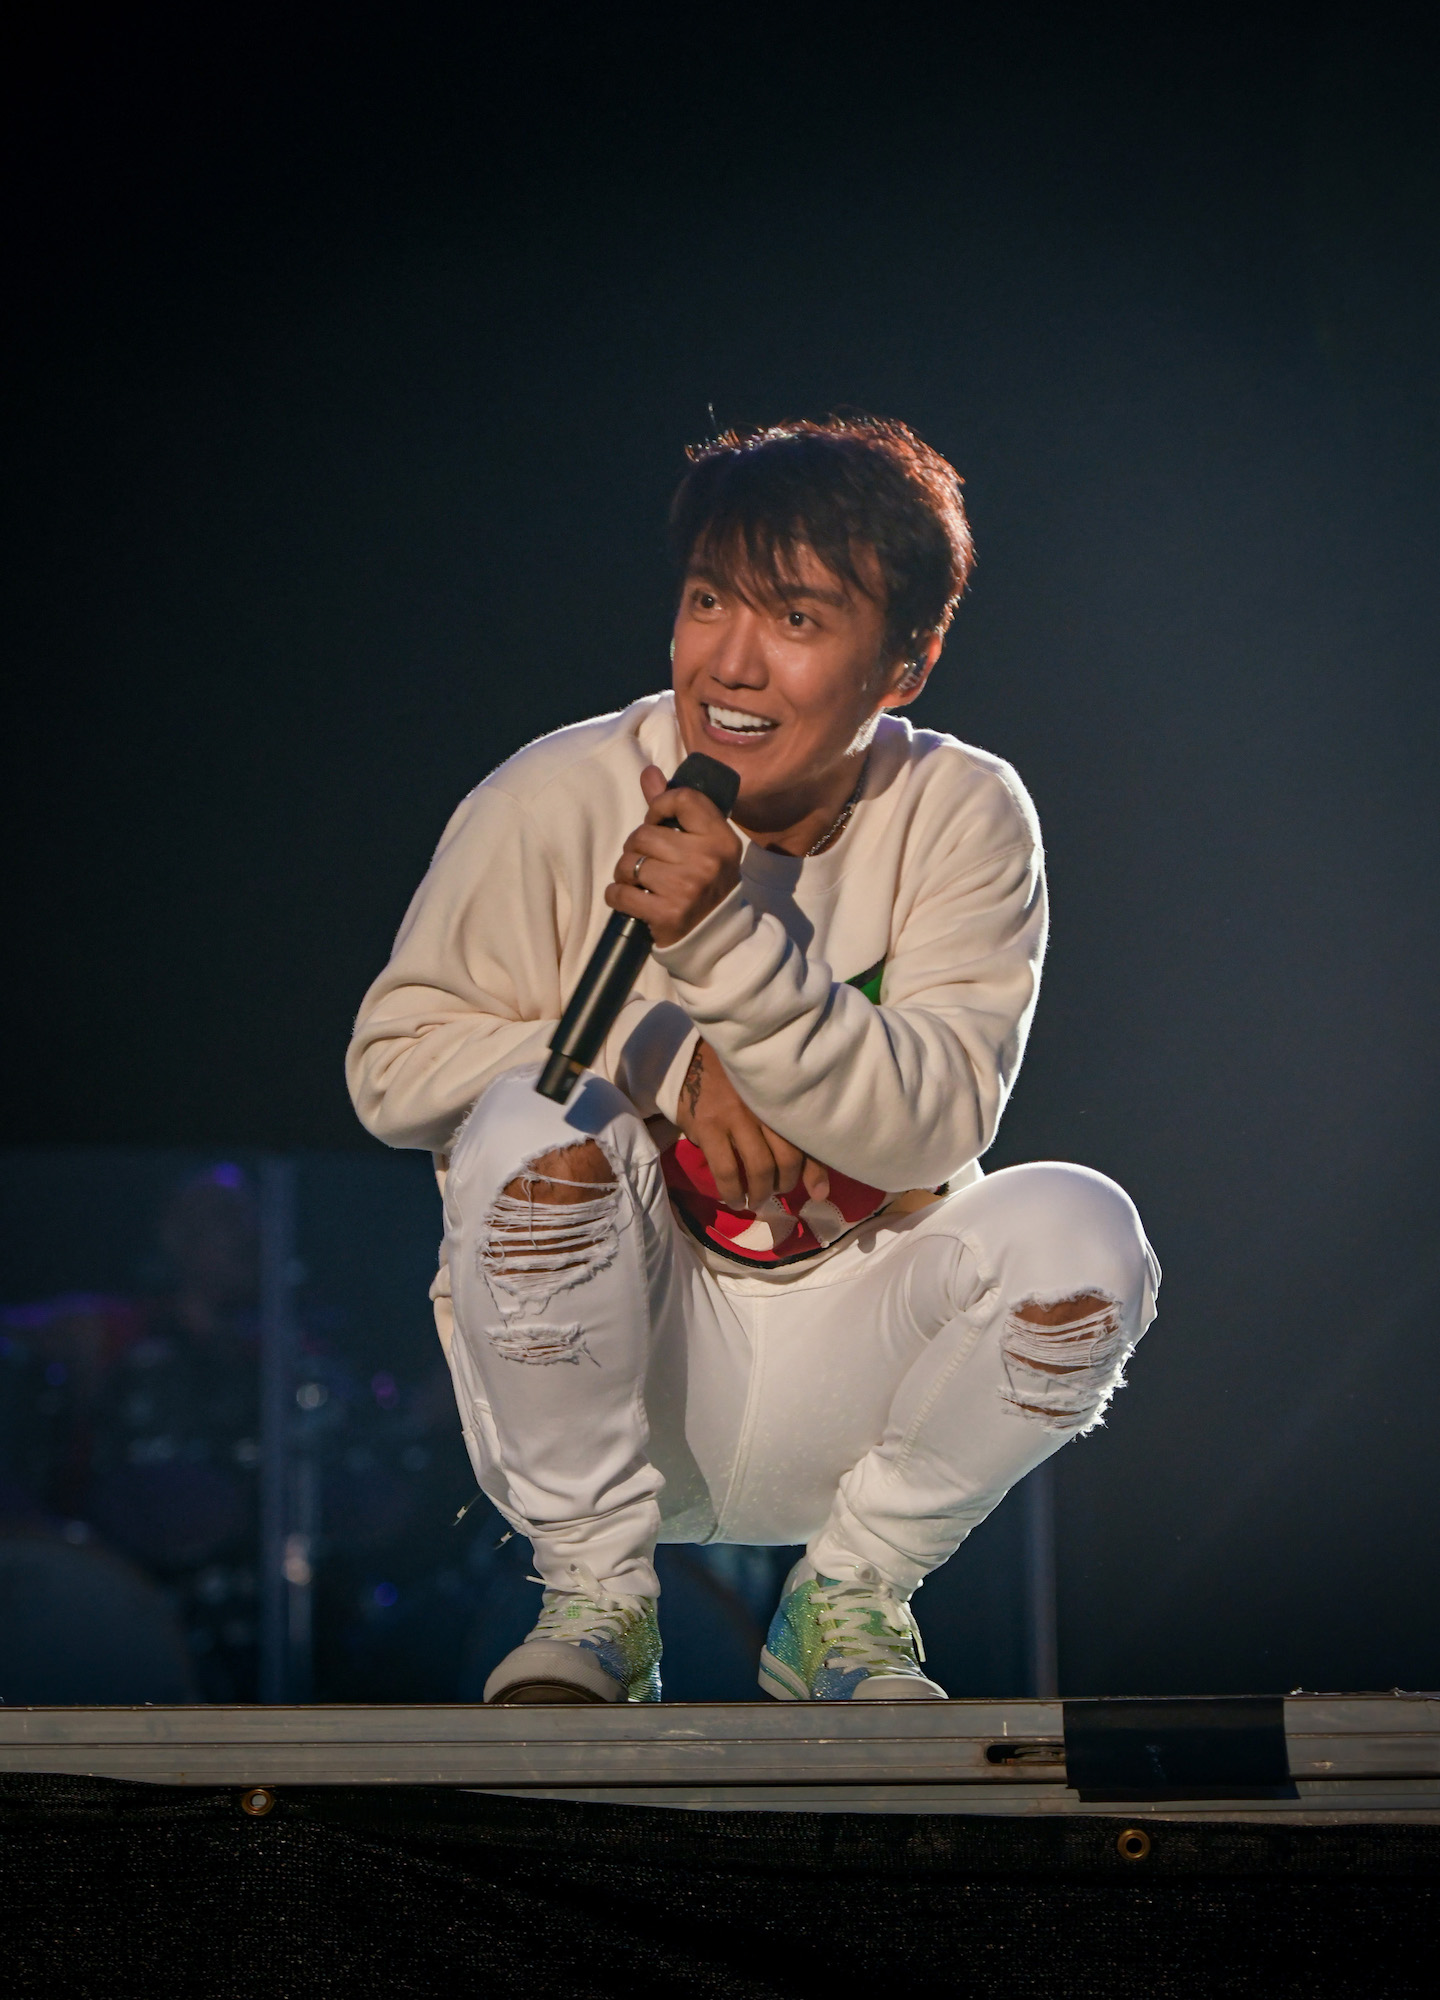 Journey Live at Lollapalooza [GALLERY] 17